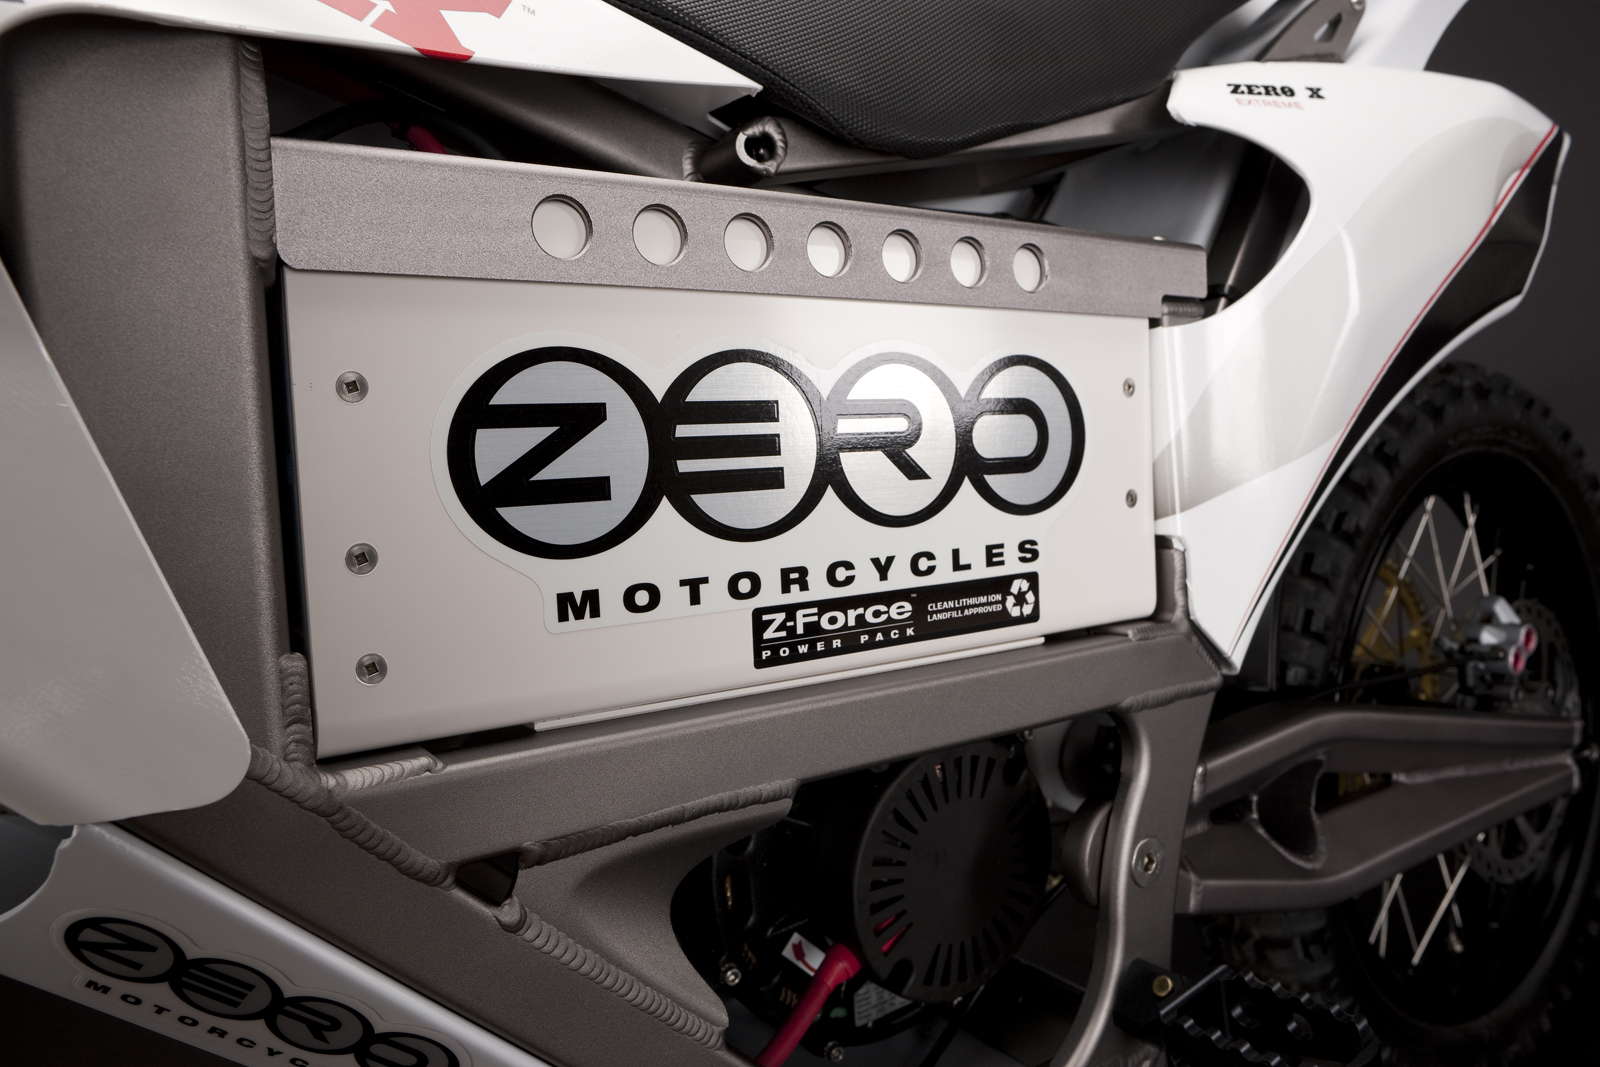 2010 Zero X Electric Motorcycle: Battery